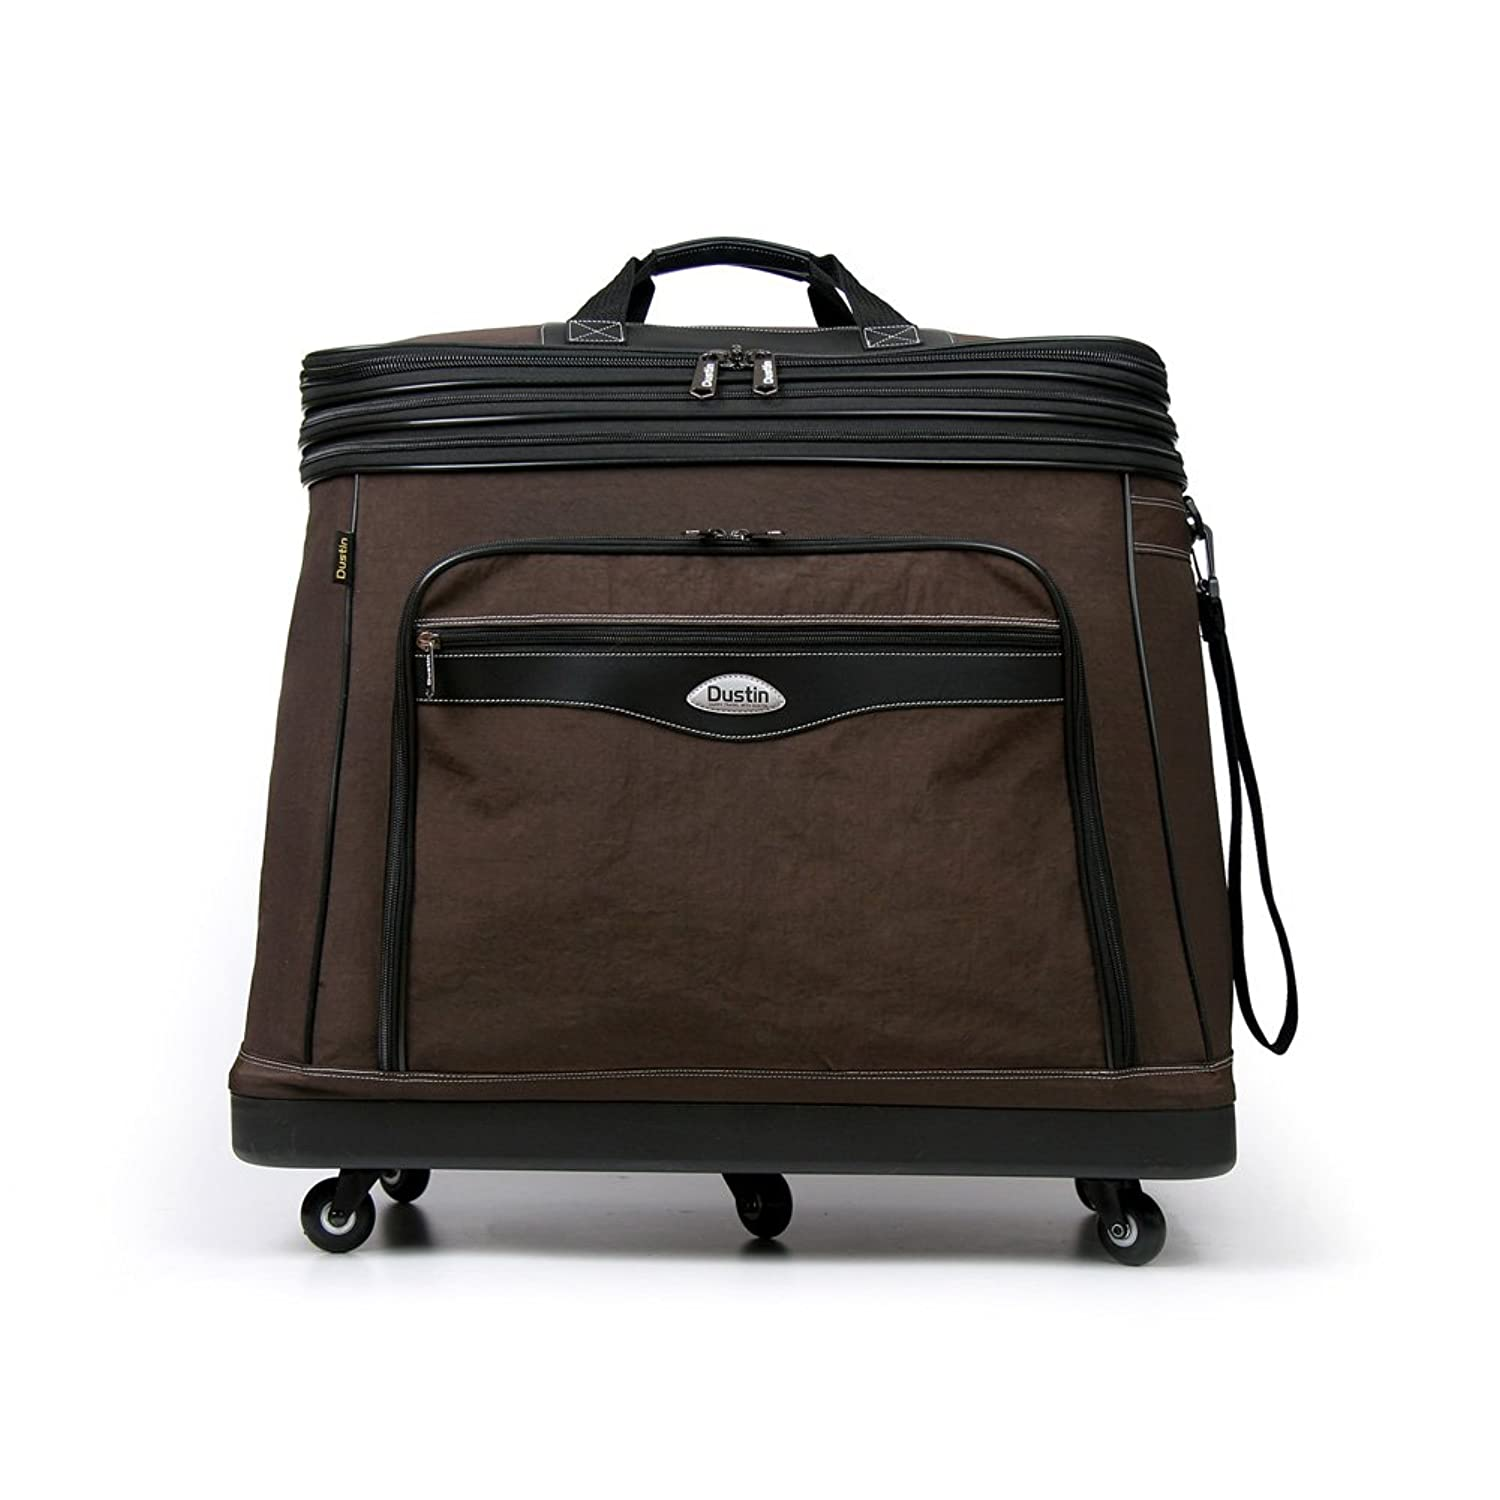 Amazon.com | Dustin Upward Expandable Wheeled Bags Luggage Dr-100 One-Size Brown | Travel Duffels